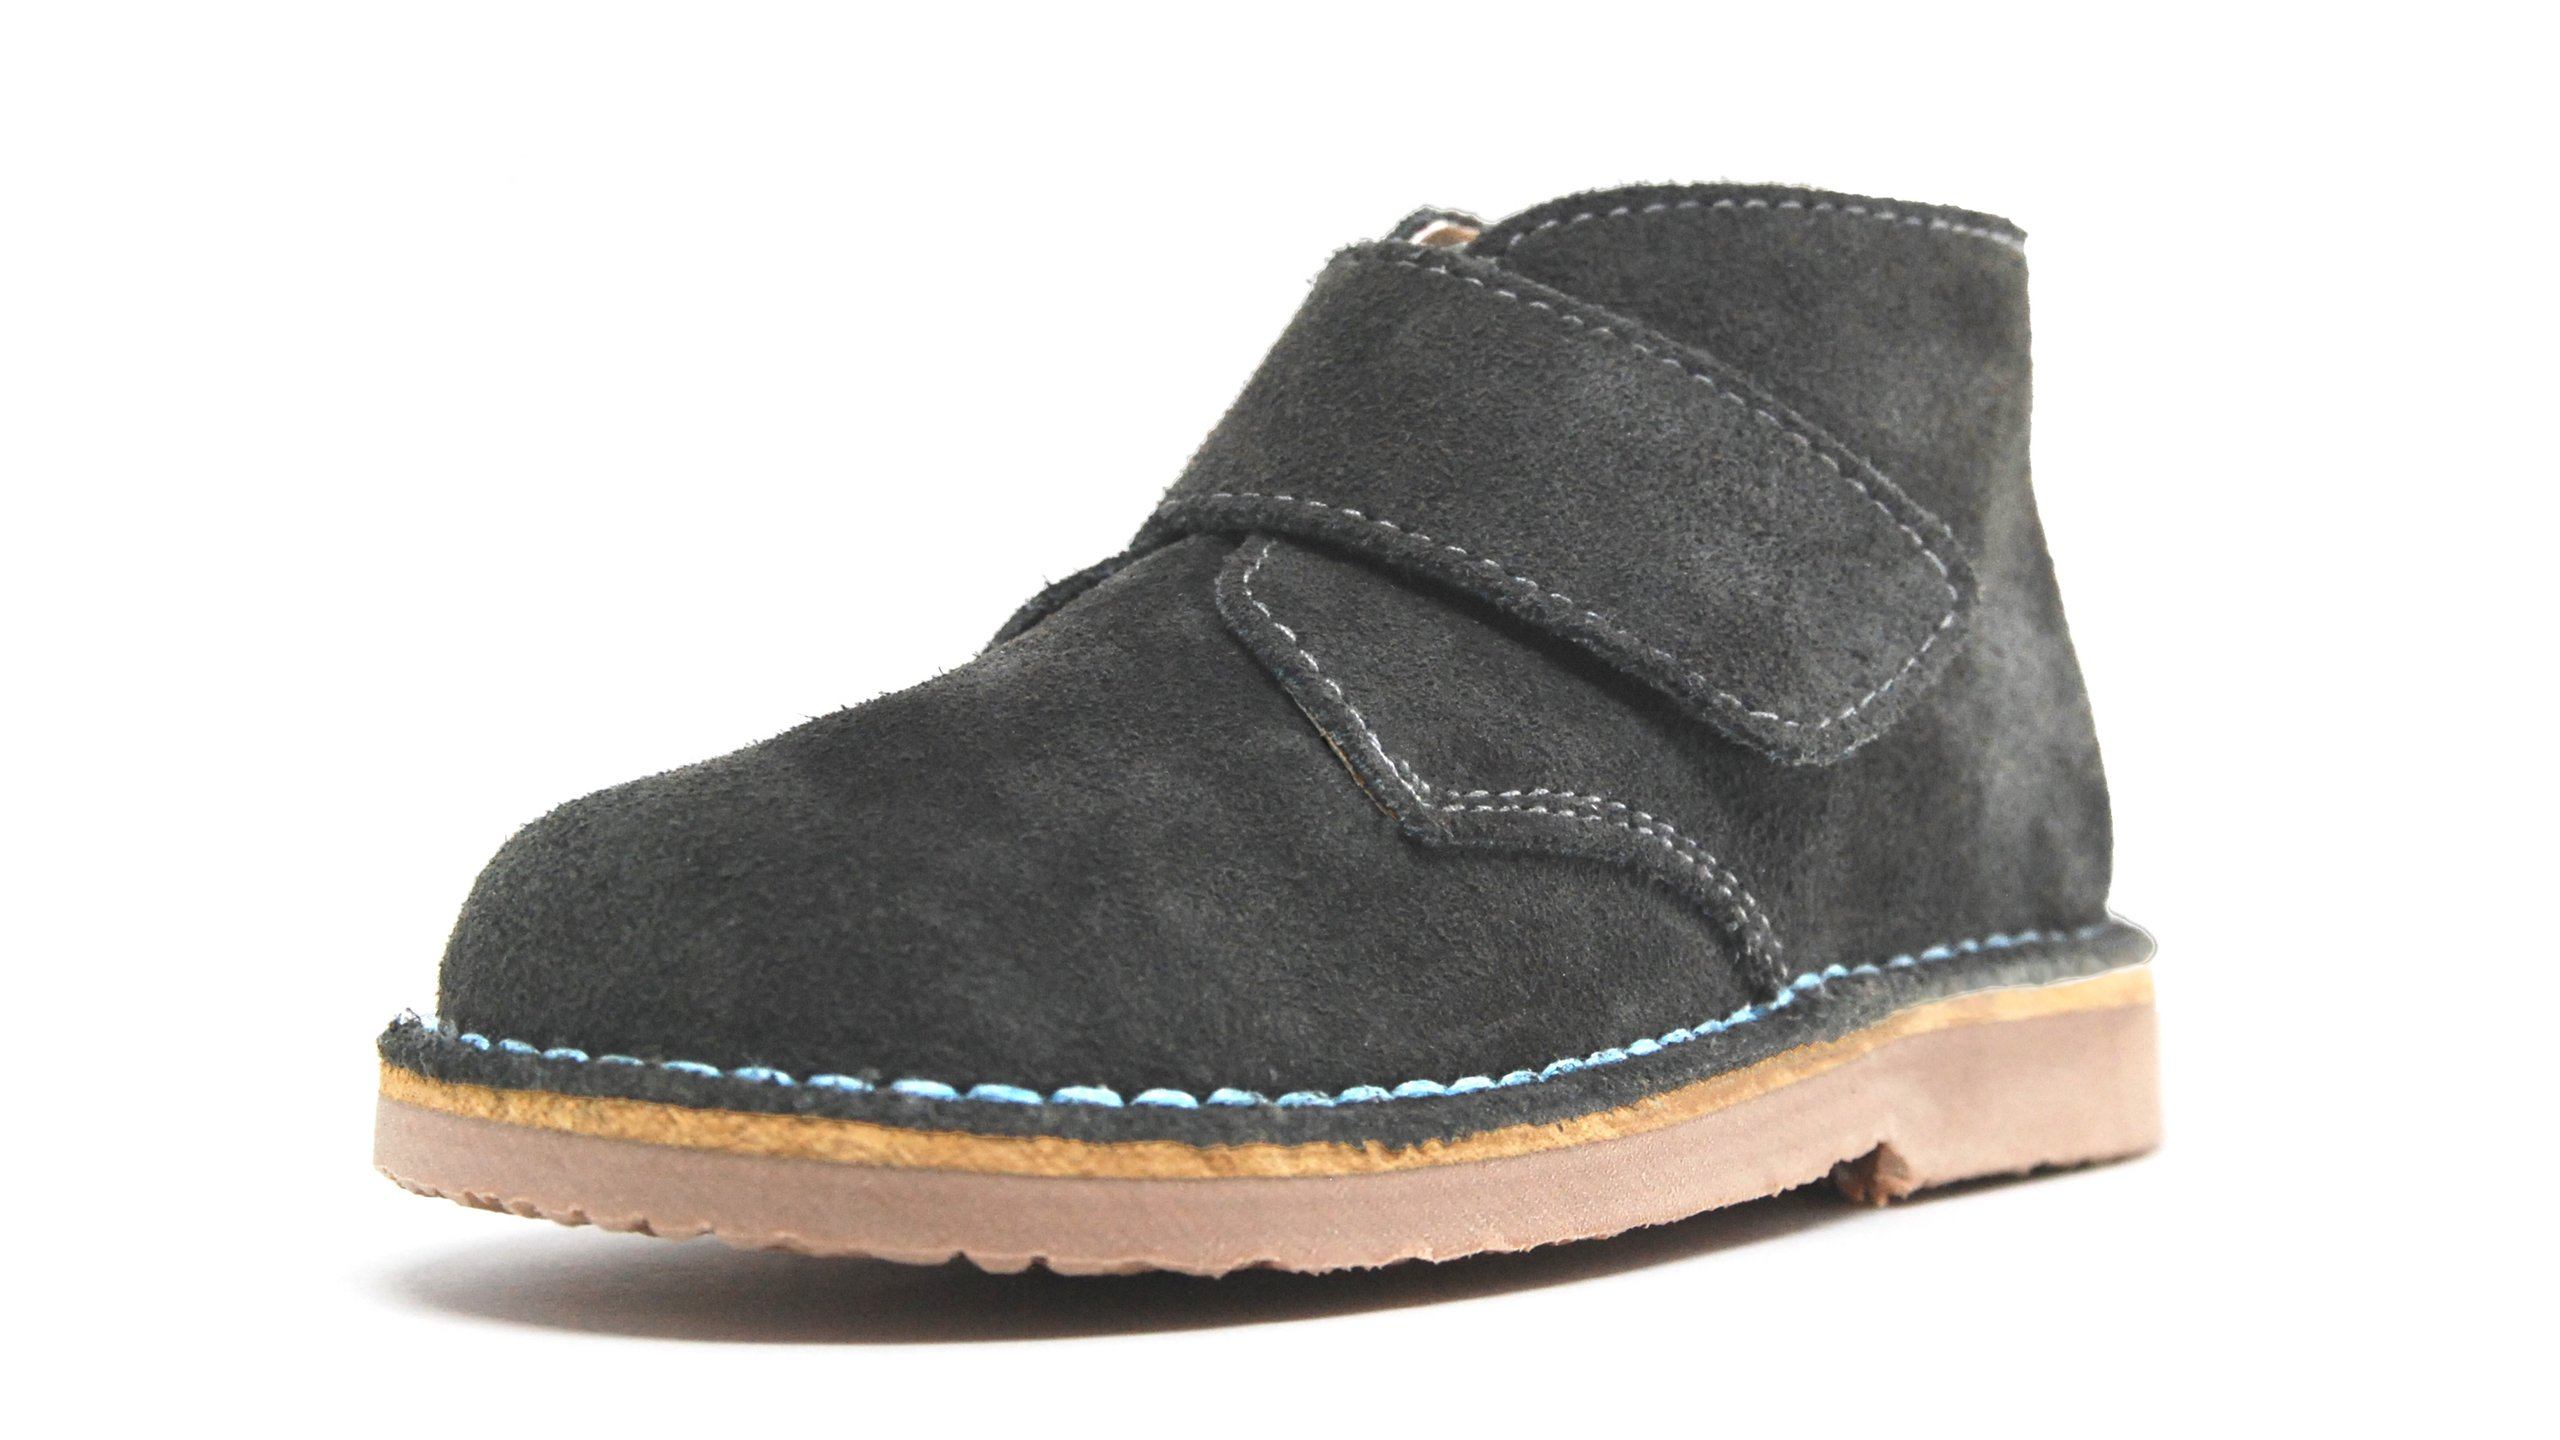 POM Shoes Madrid Mini Gray & Blue Velcro Boots with Leather Lining and Blue Accents 27 EU (8 M US Toddler)